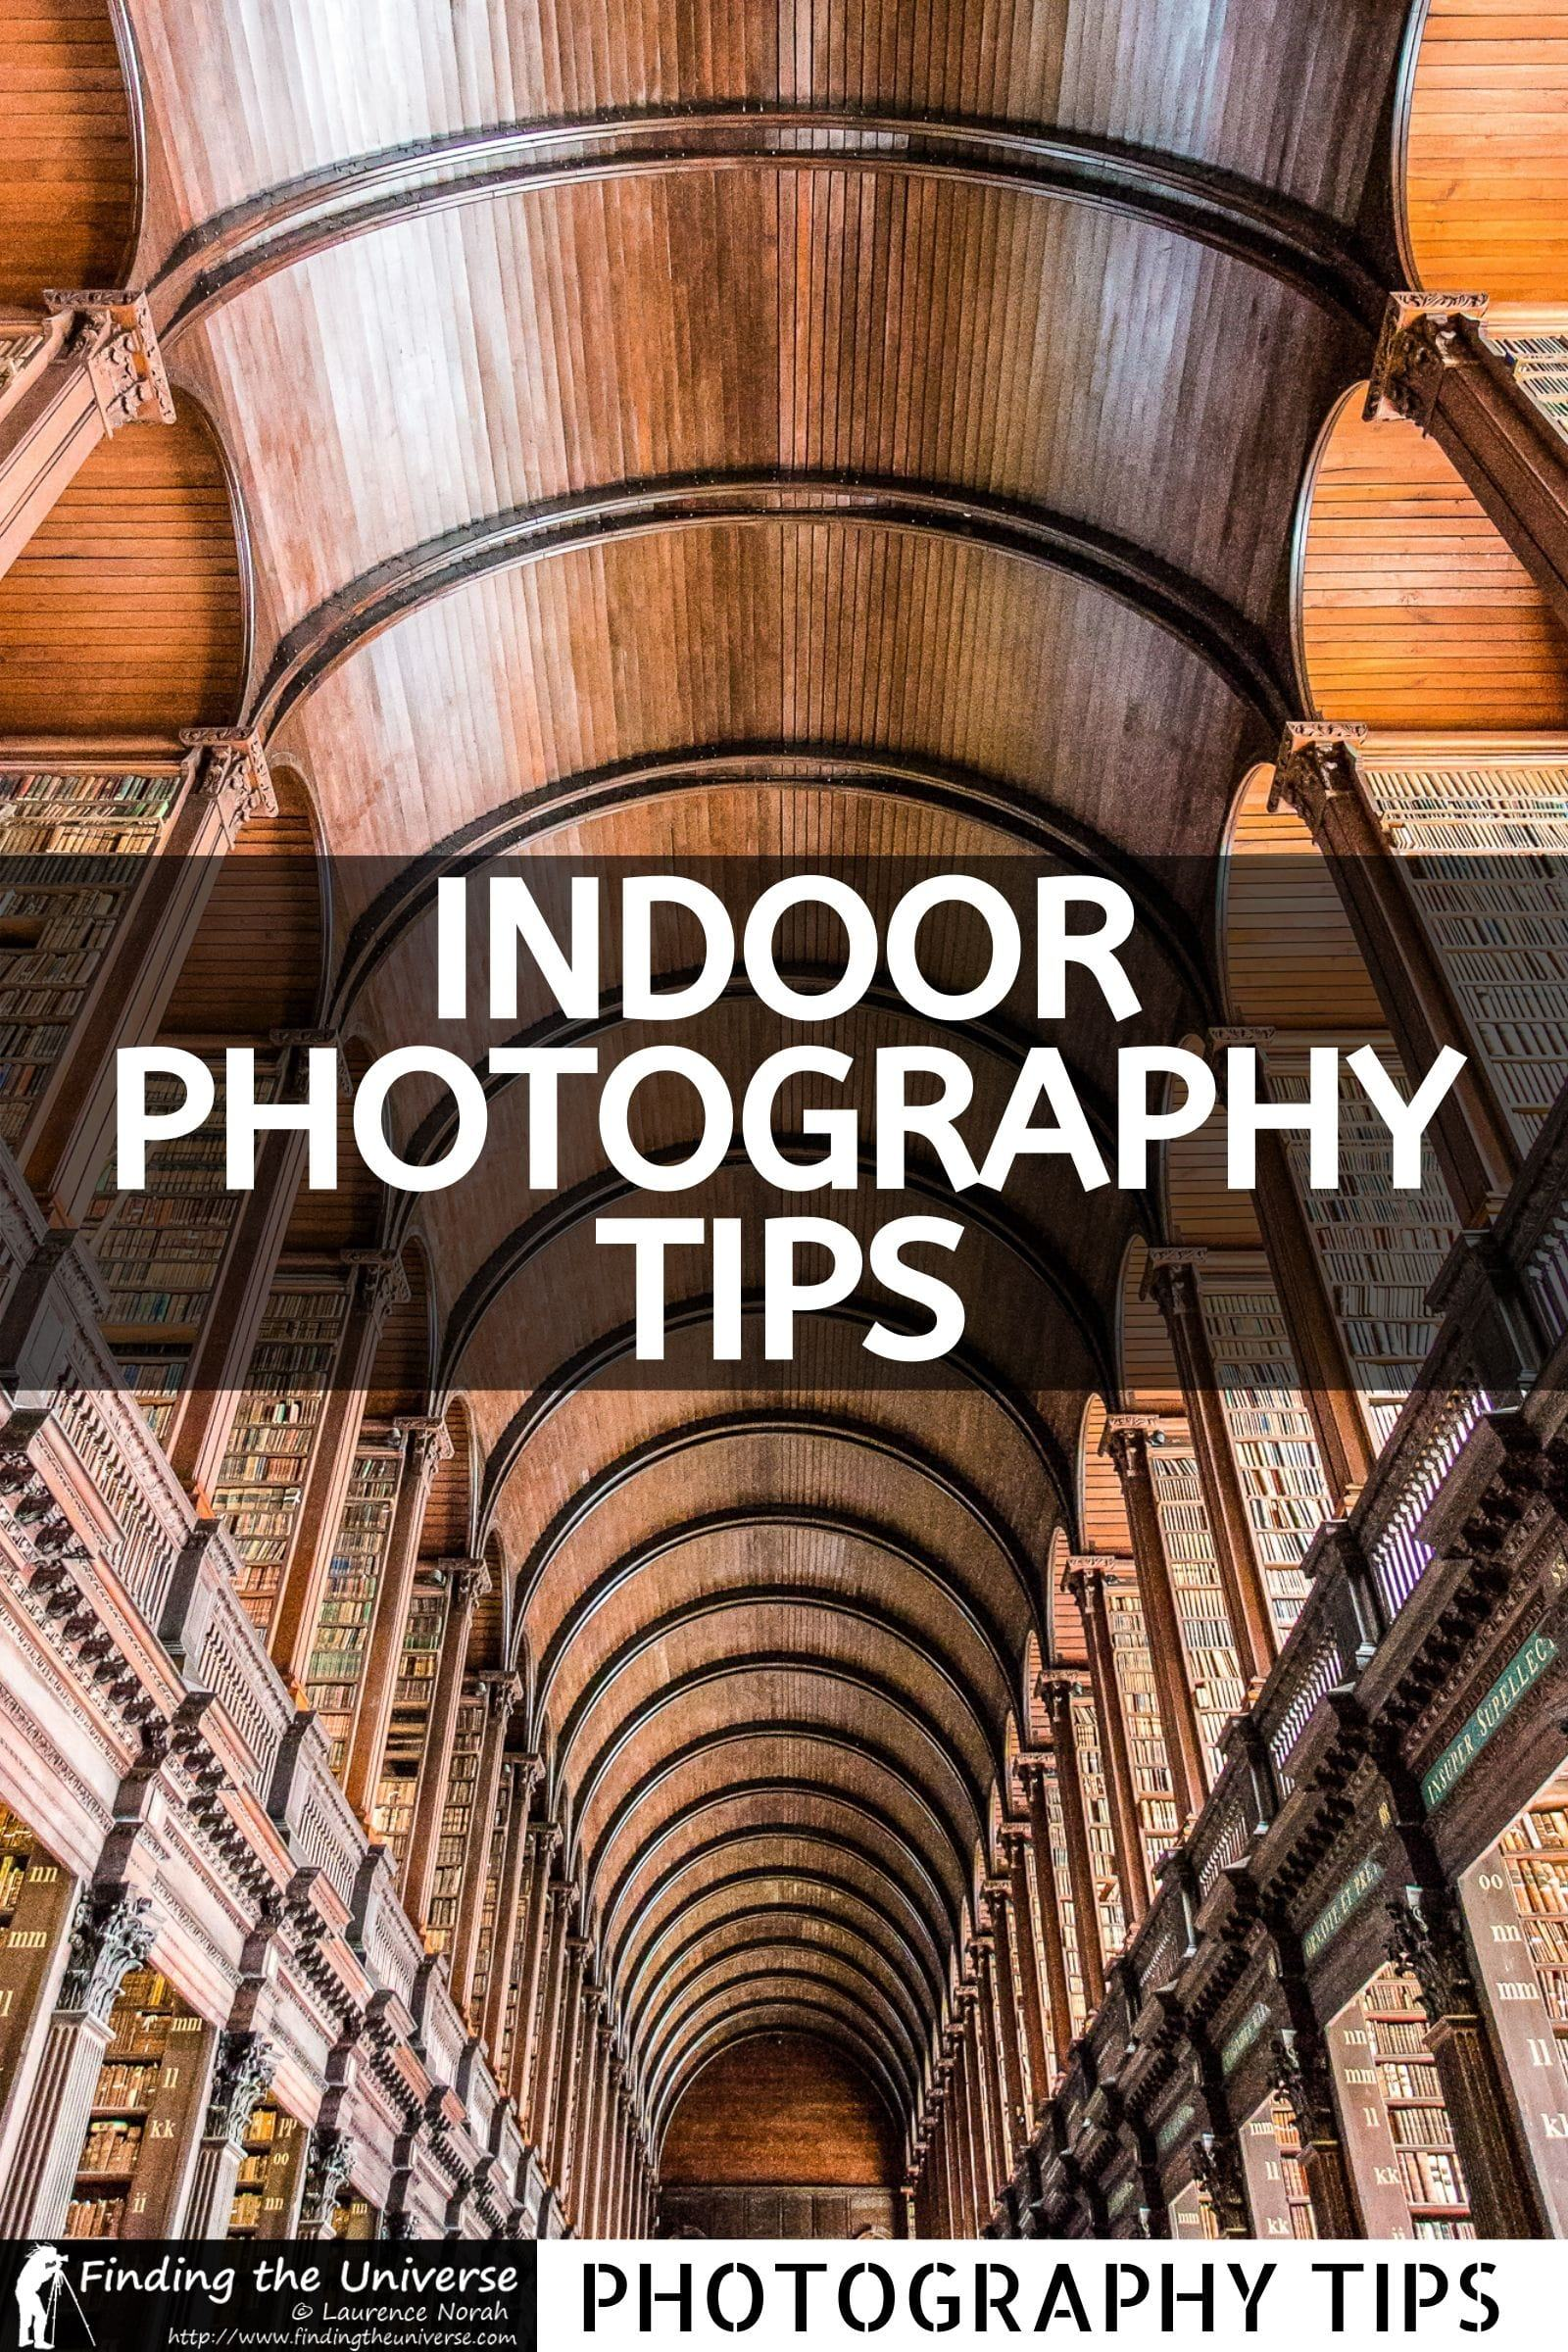 A detailed guide to indoor photography. Everything you need to know to get great photos inside, from the gear you need, to tips and tricks.